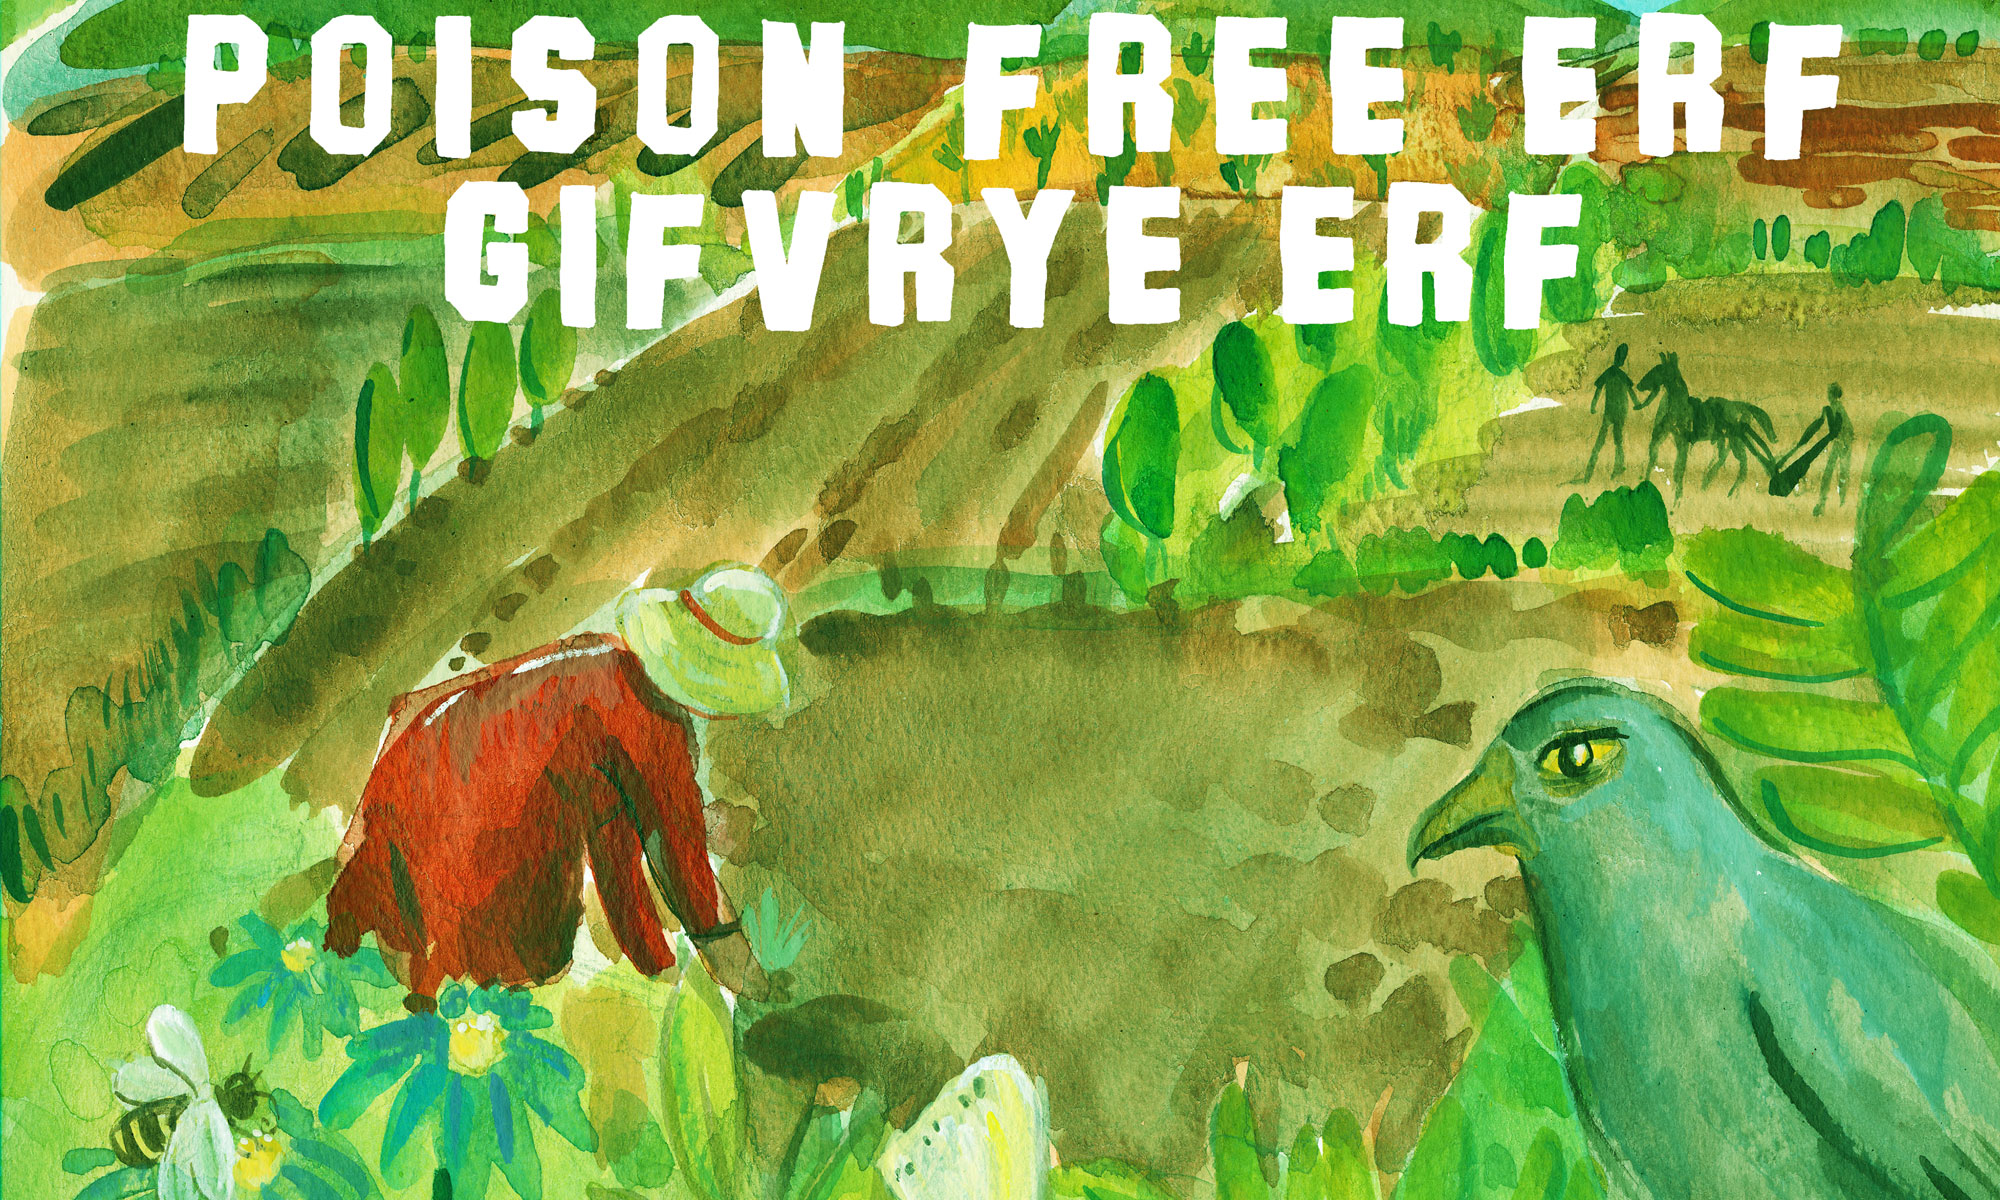 Poison free erf sign